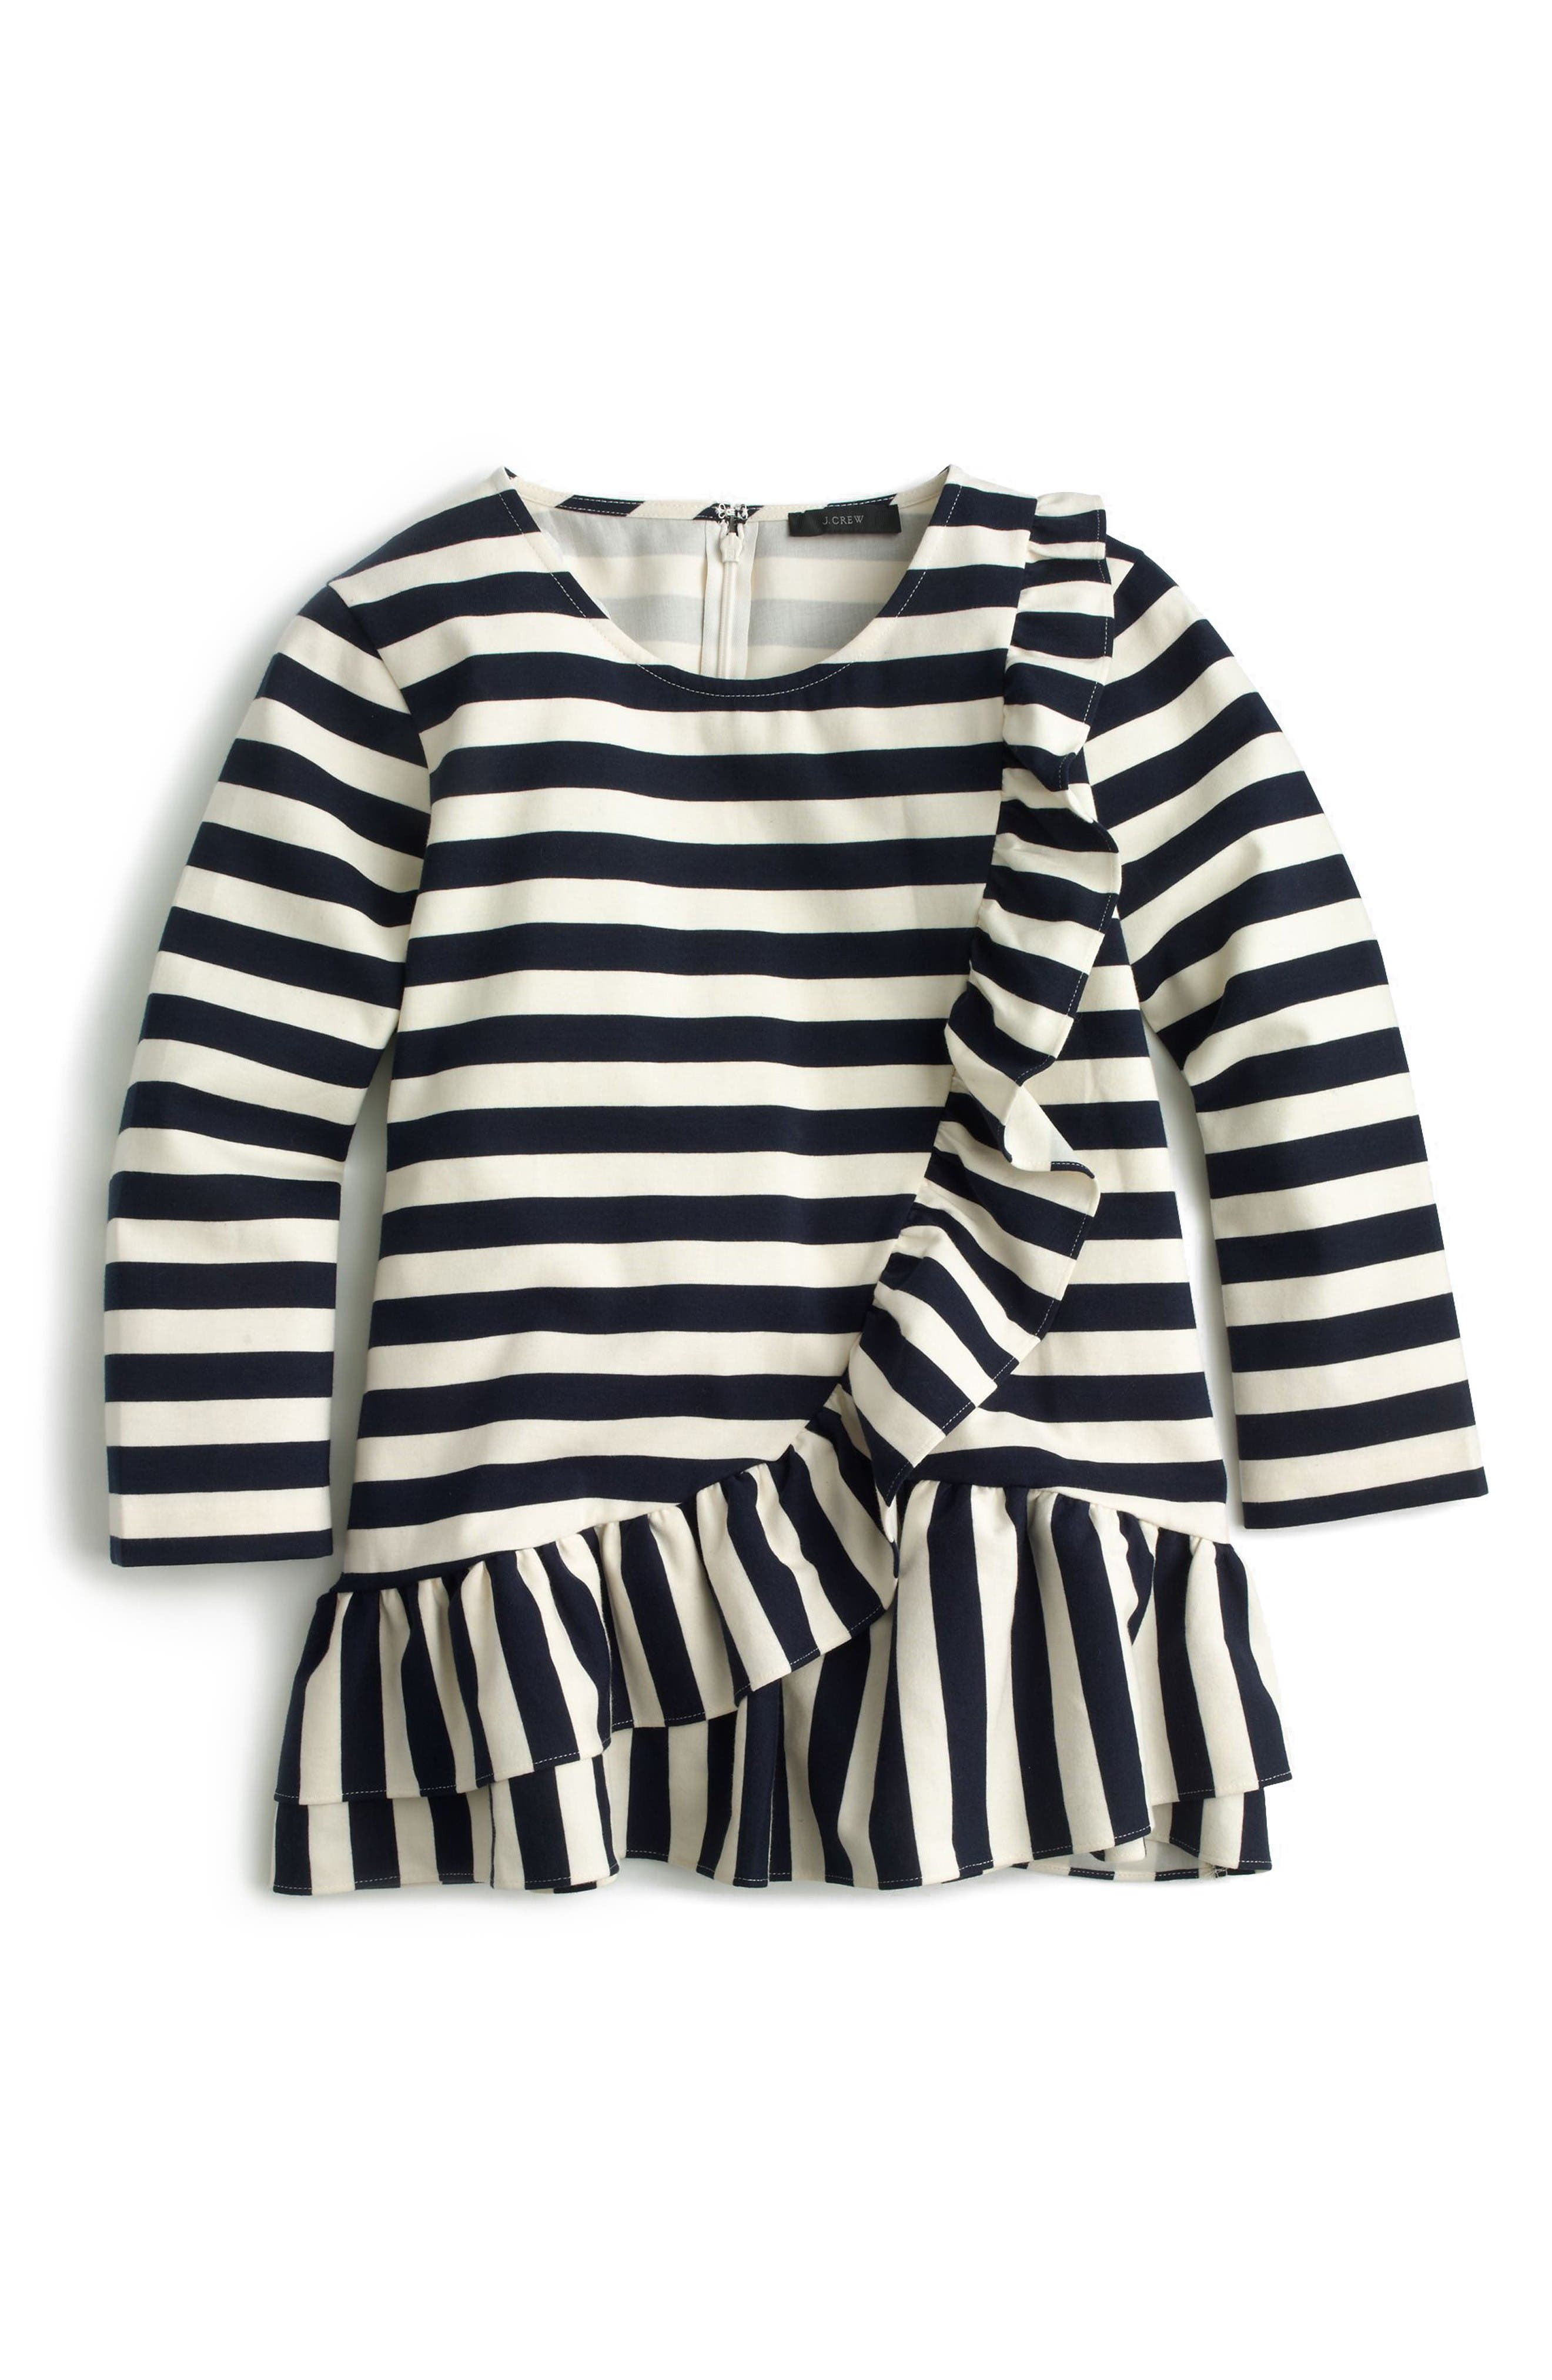 Alternate Image 3  - J.Crew Asymmetrical Stripe Ruffle Top